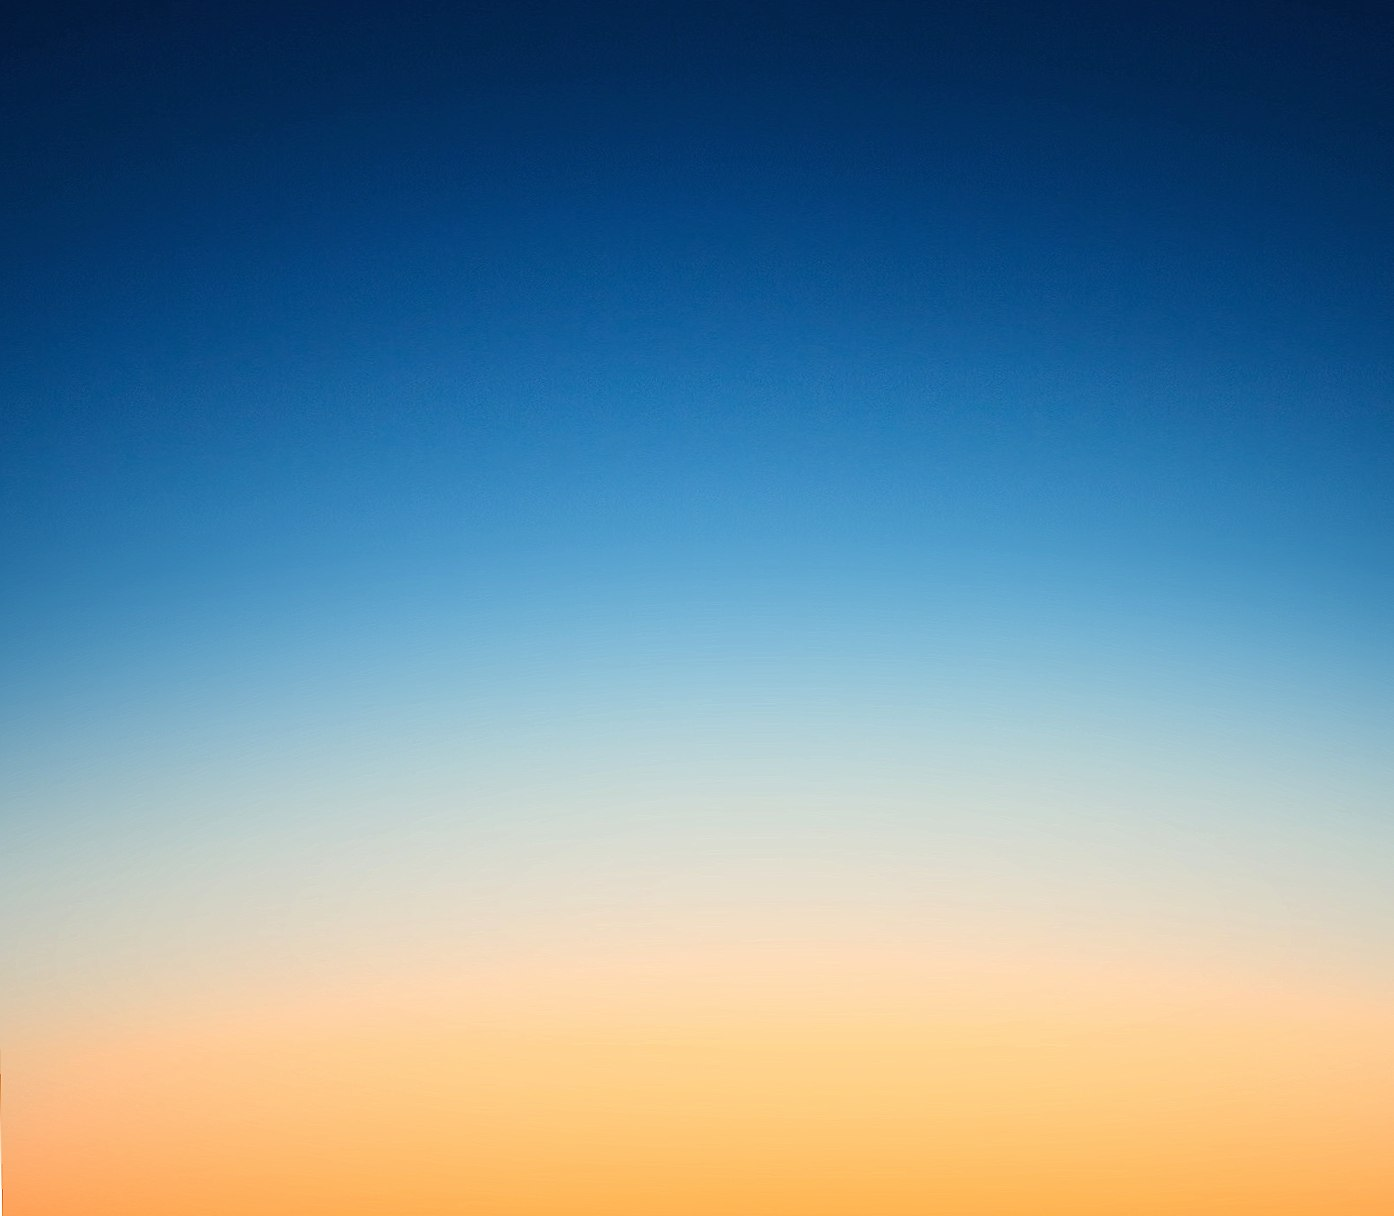 minimal ios wallpapers HD quality